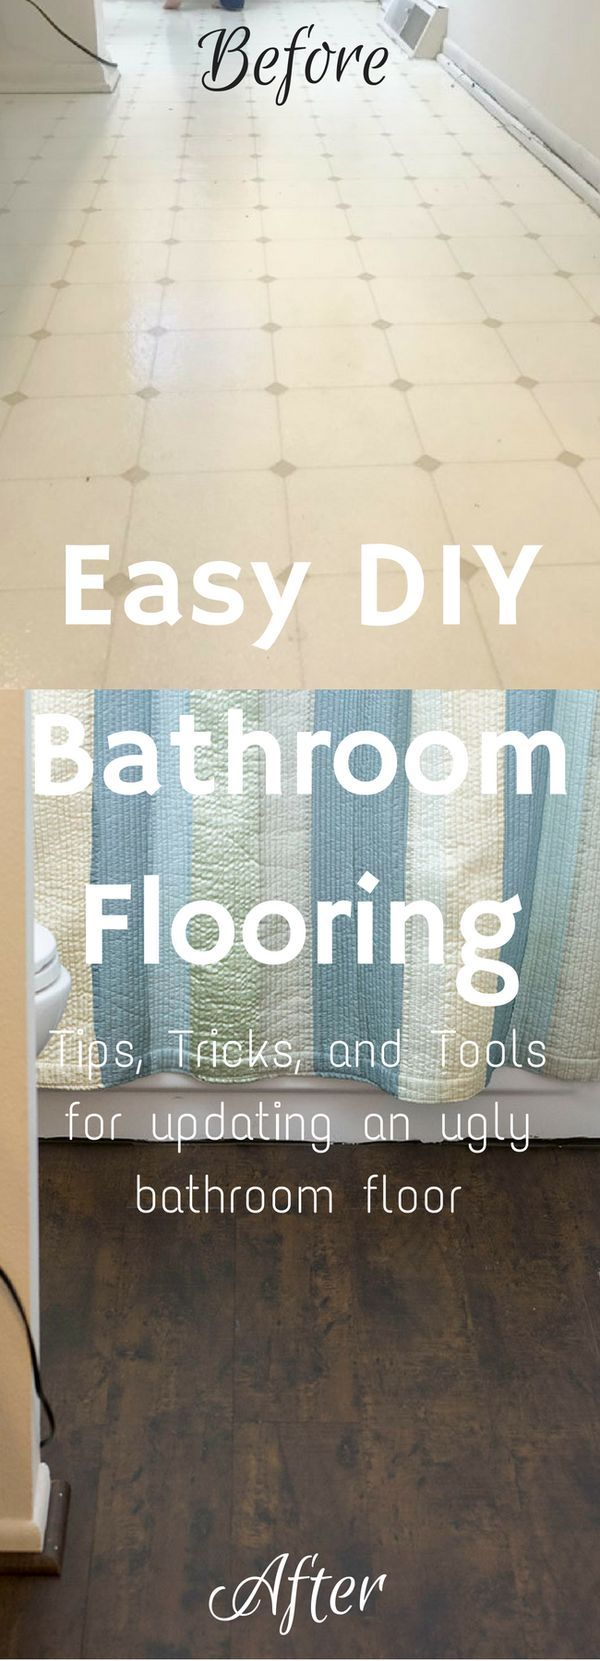 Bathroom Remodel / Bathroom Ideas / Bathroom On A Budget / Bathroom  Makeover / Flooring Ideas / Floor DIY / Floor Ideas / Cheap Floor (Diy  Bathroom Remodel)